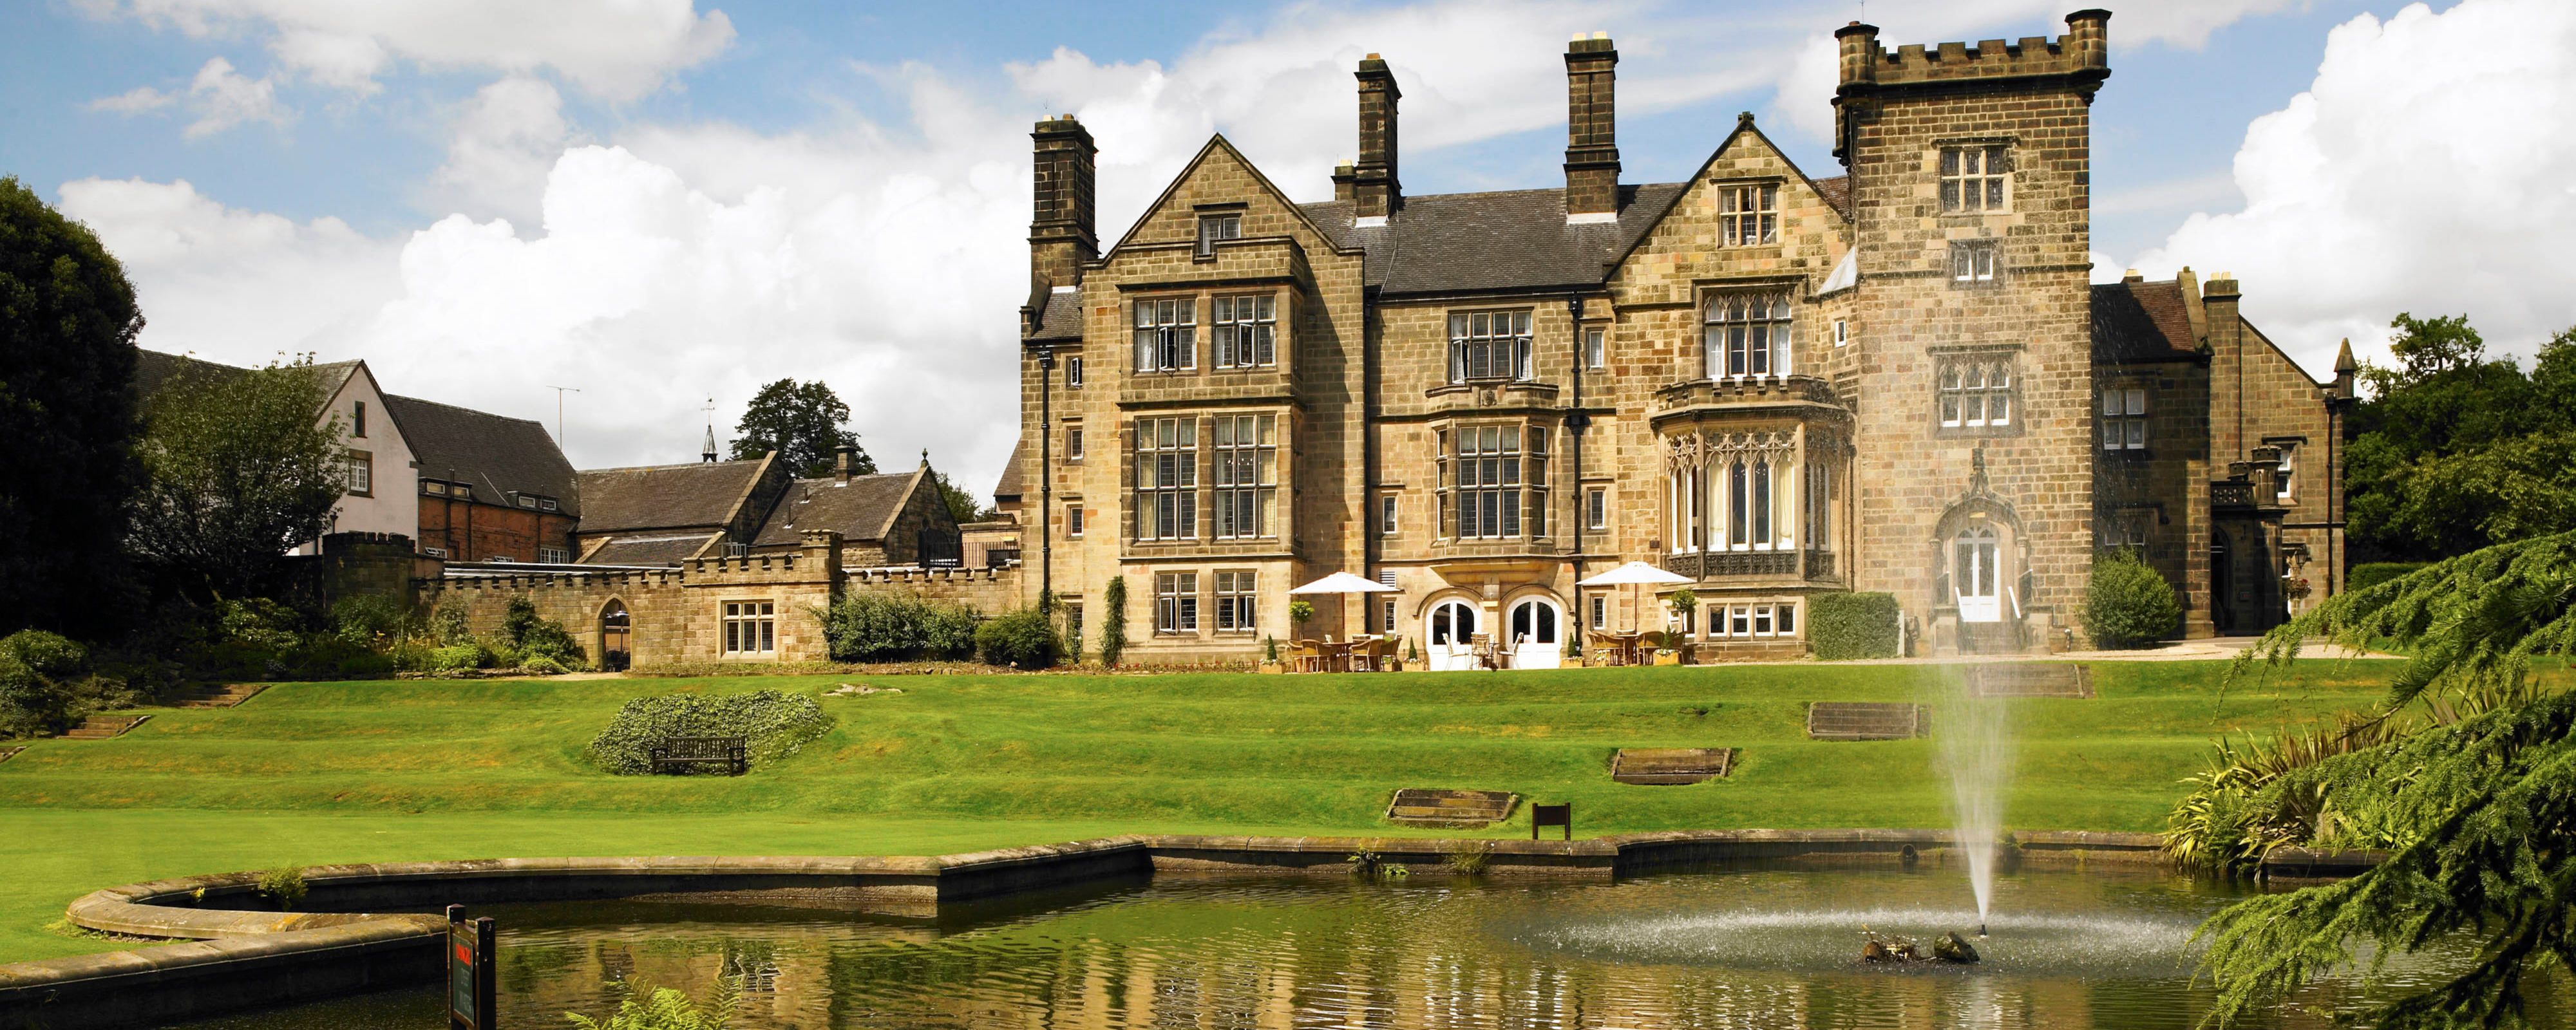 Breadsall Priory Hotel & Country Club for hire